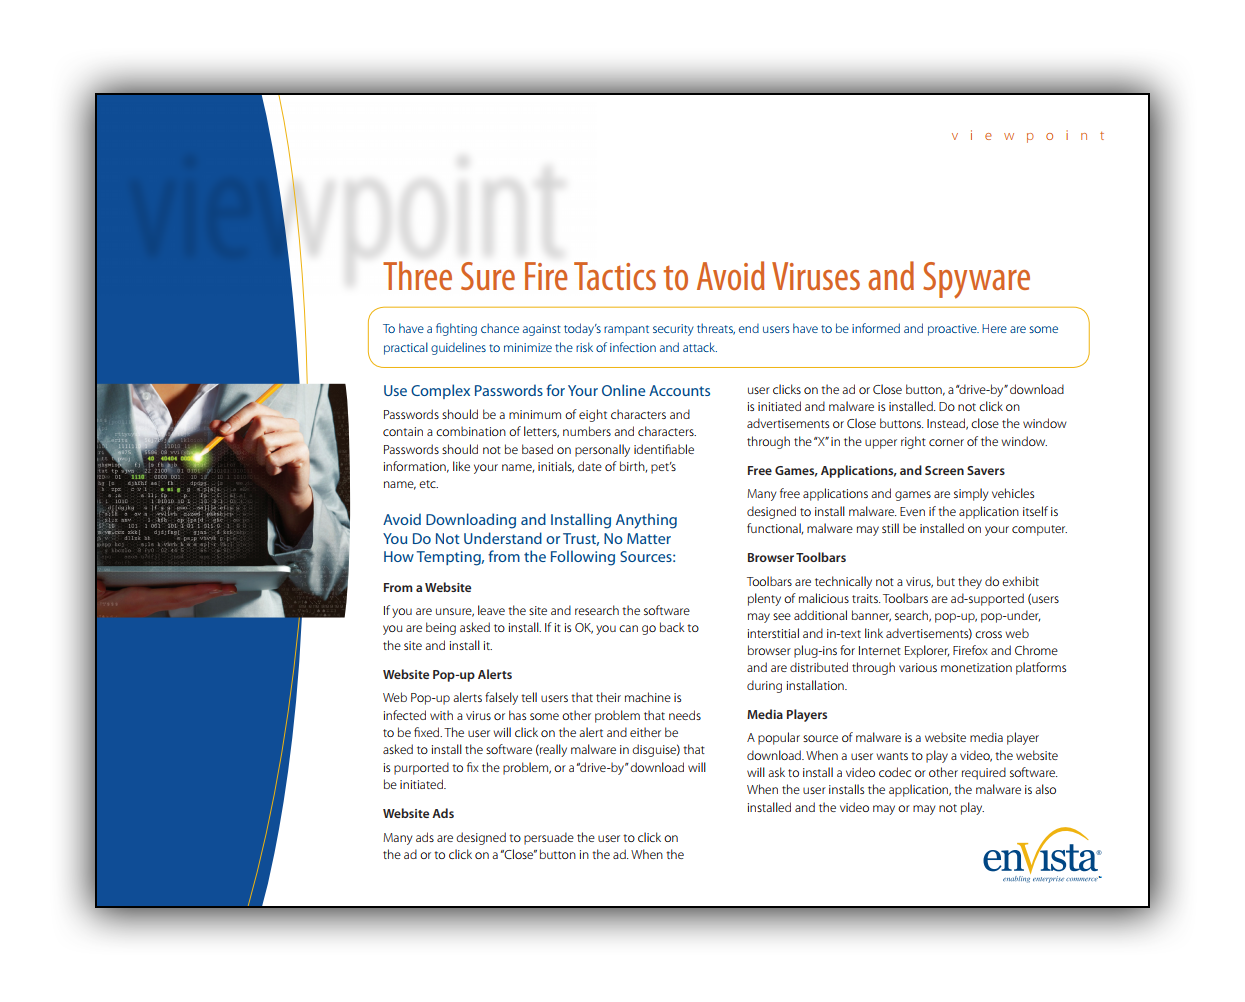 White Paper: 3 Sure Fire Tactics to Avoid Viruses and Spyware